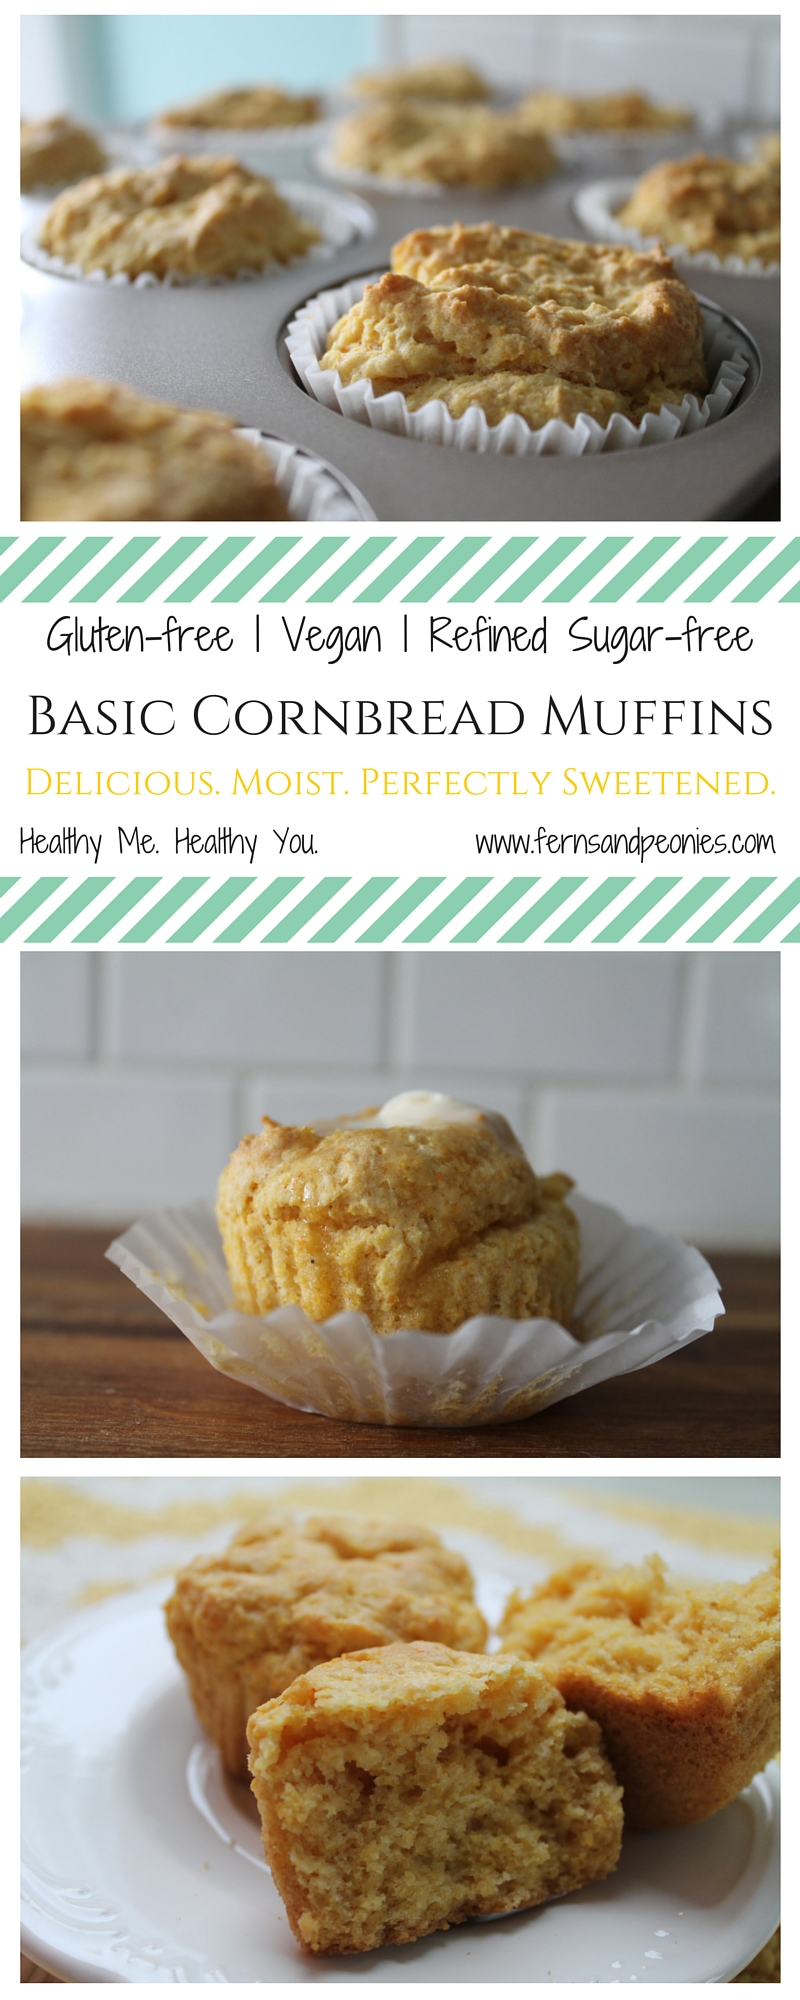 Moist and delicious basic cornbread muffins. This recipe is gluten-free, vegan, and refined sugar-free—but no one will ever know it. Read the blog at www.fernsandpeonies.com